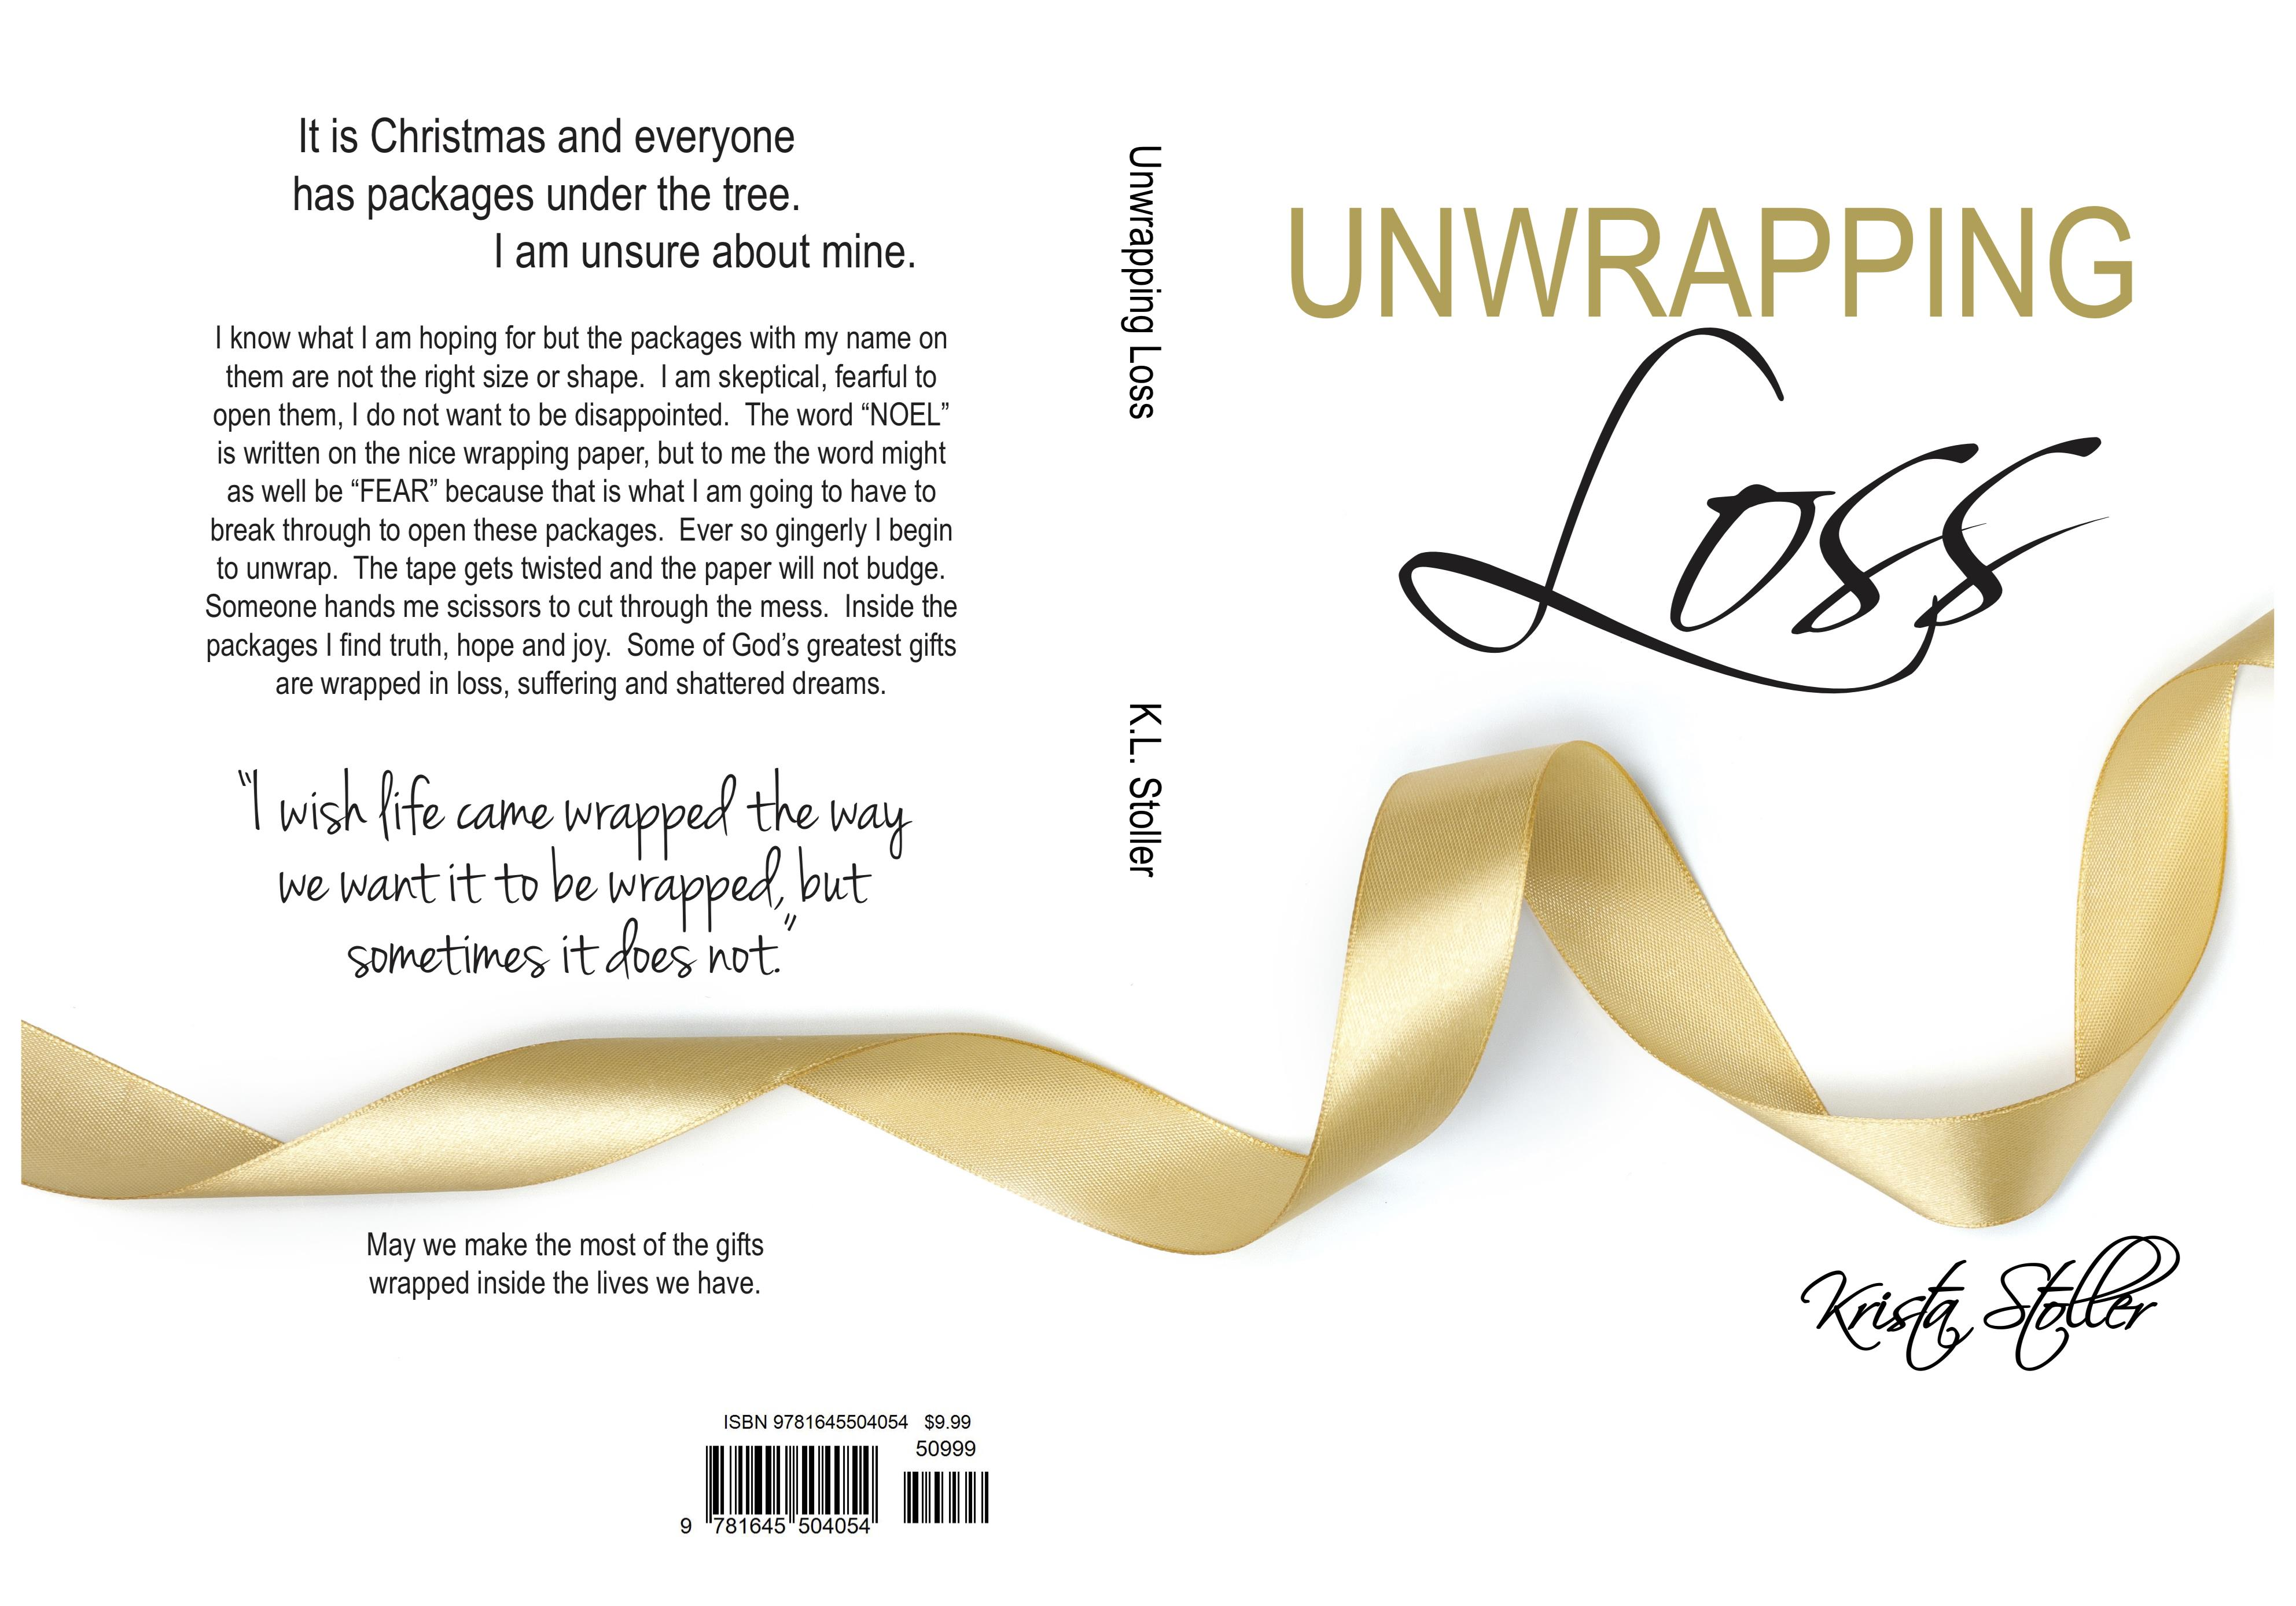 Unwrapping Loss cover image